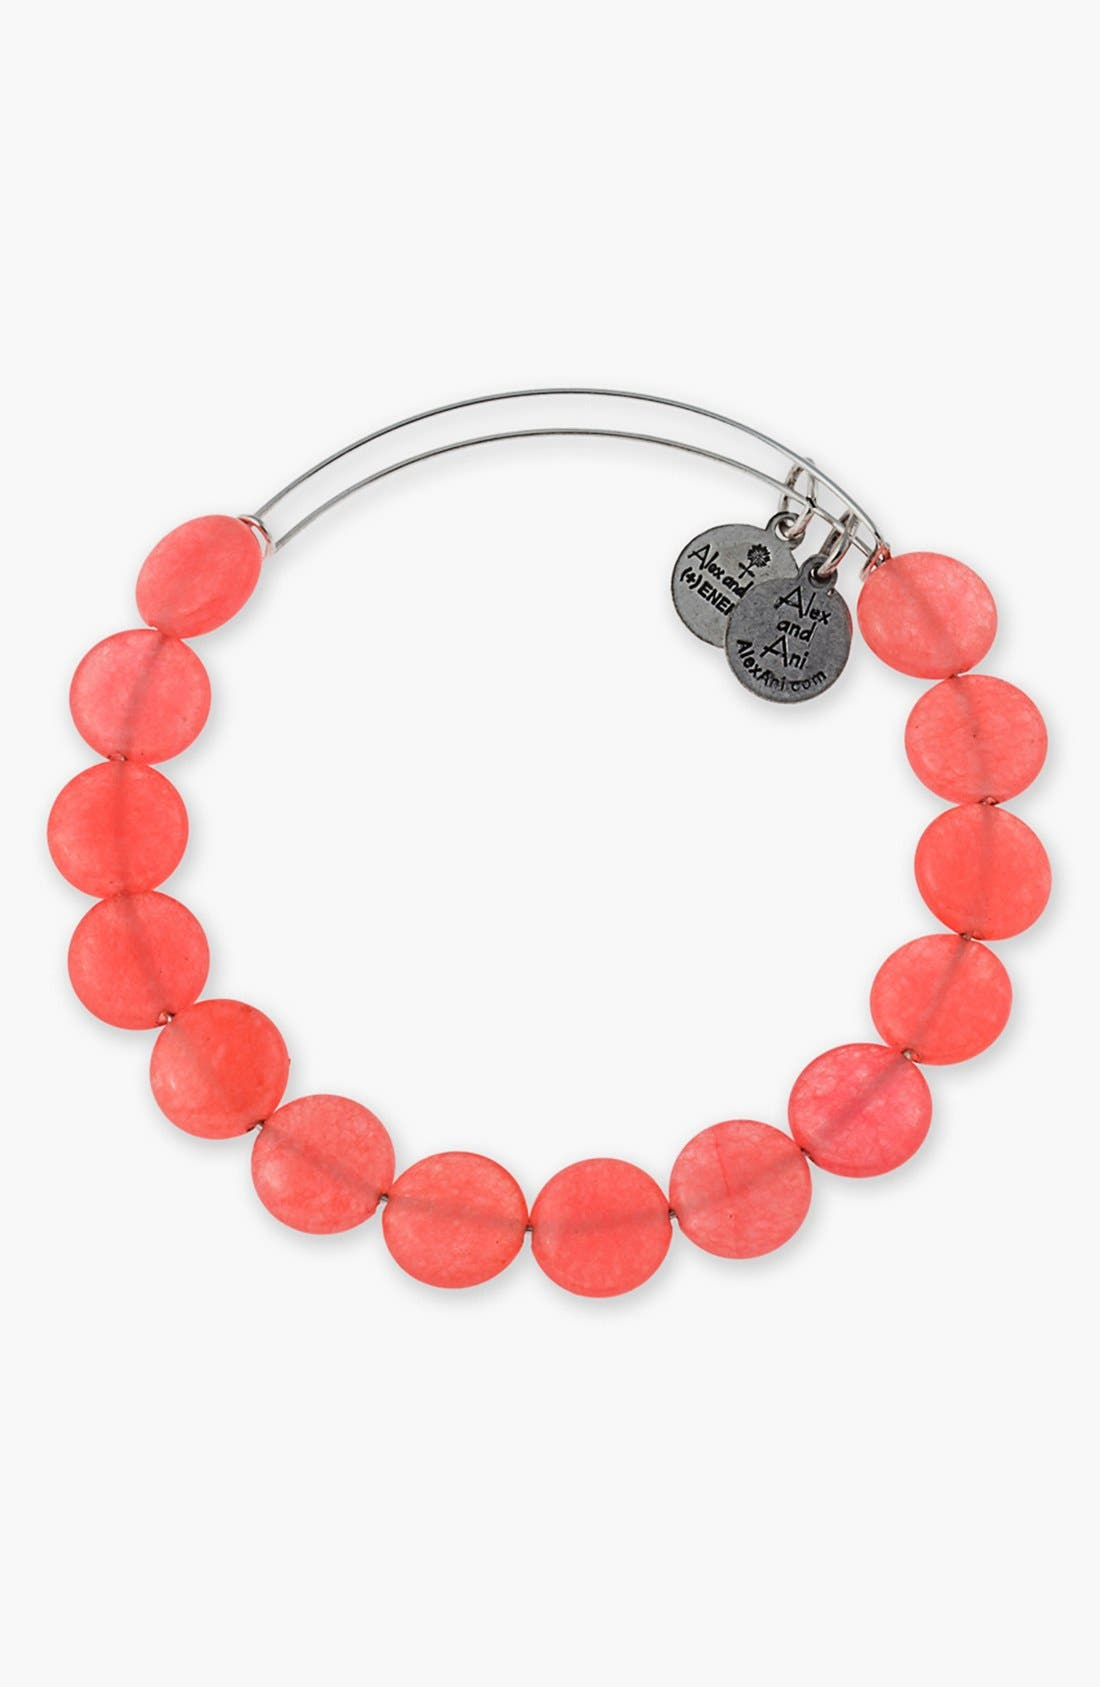 Alternate Image 1 Selected - Alex and Ani 'Sugar Rush' Bracelet